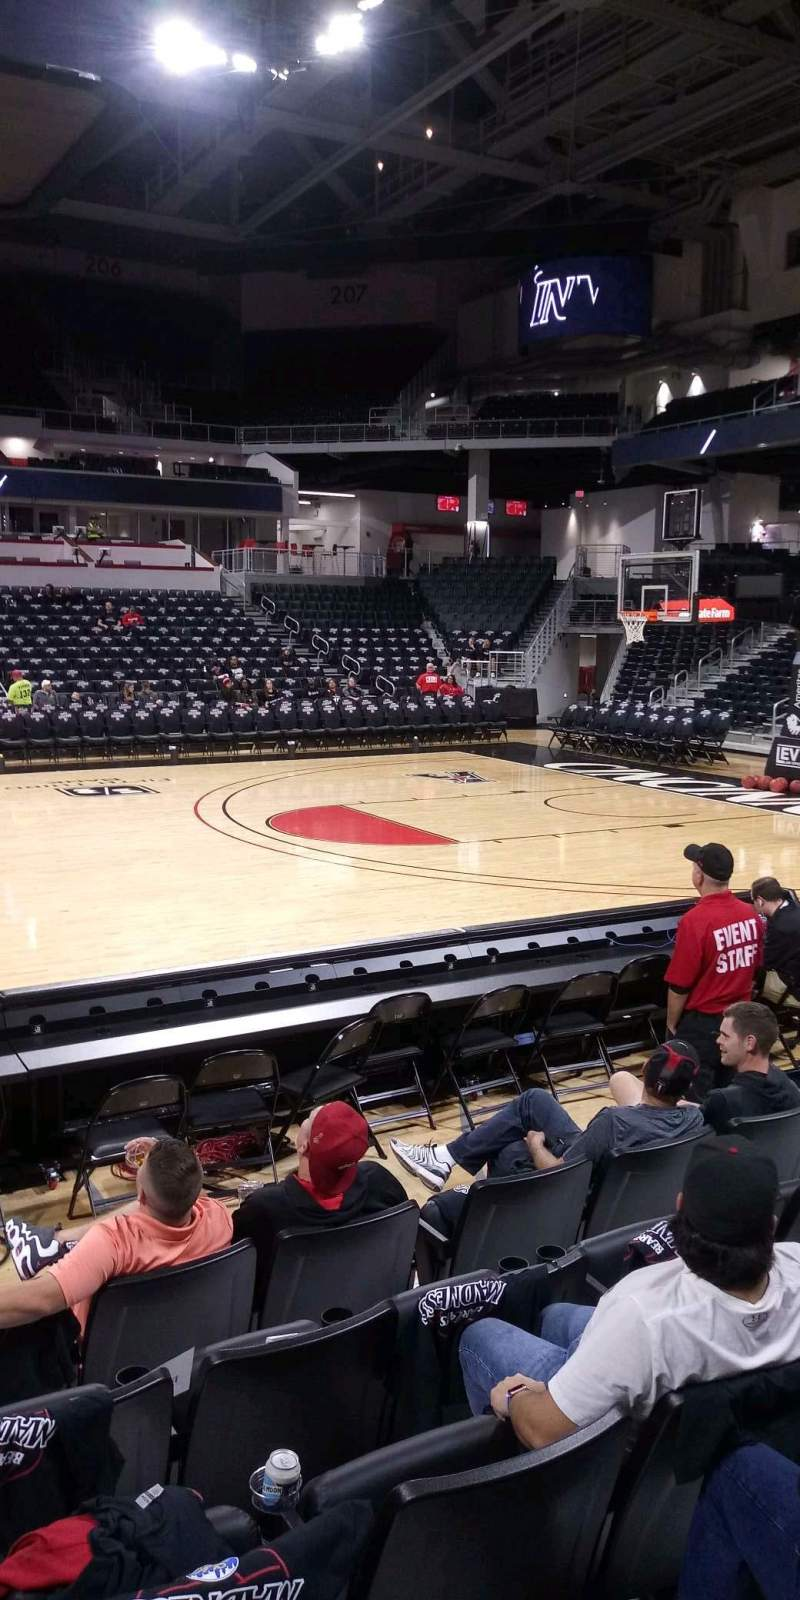 Seating view for Fifth Third Arena Section 116 Row 6 Seat 7